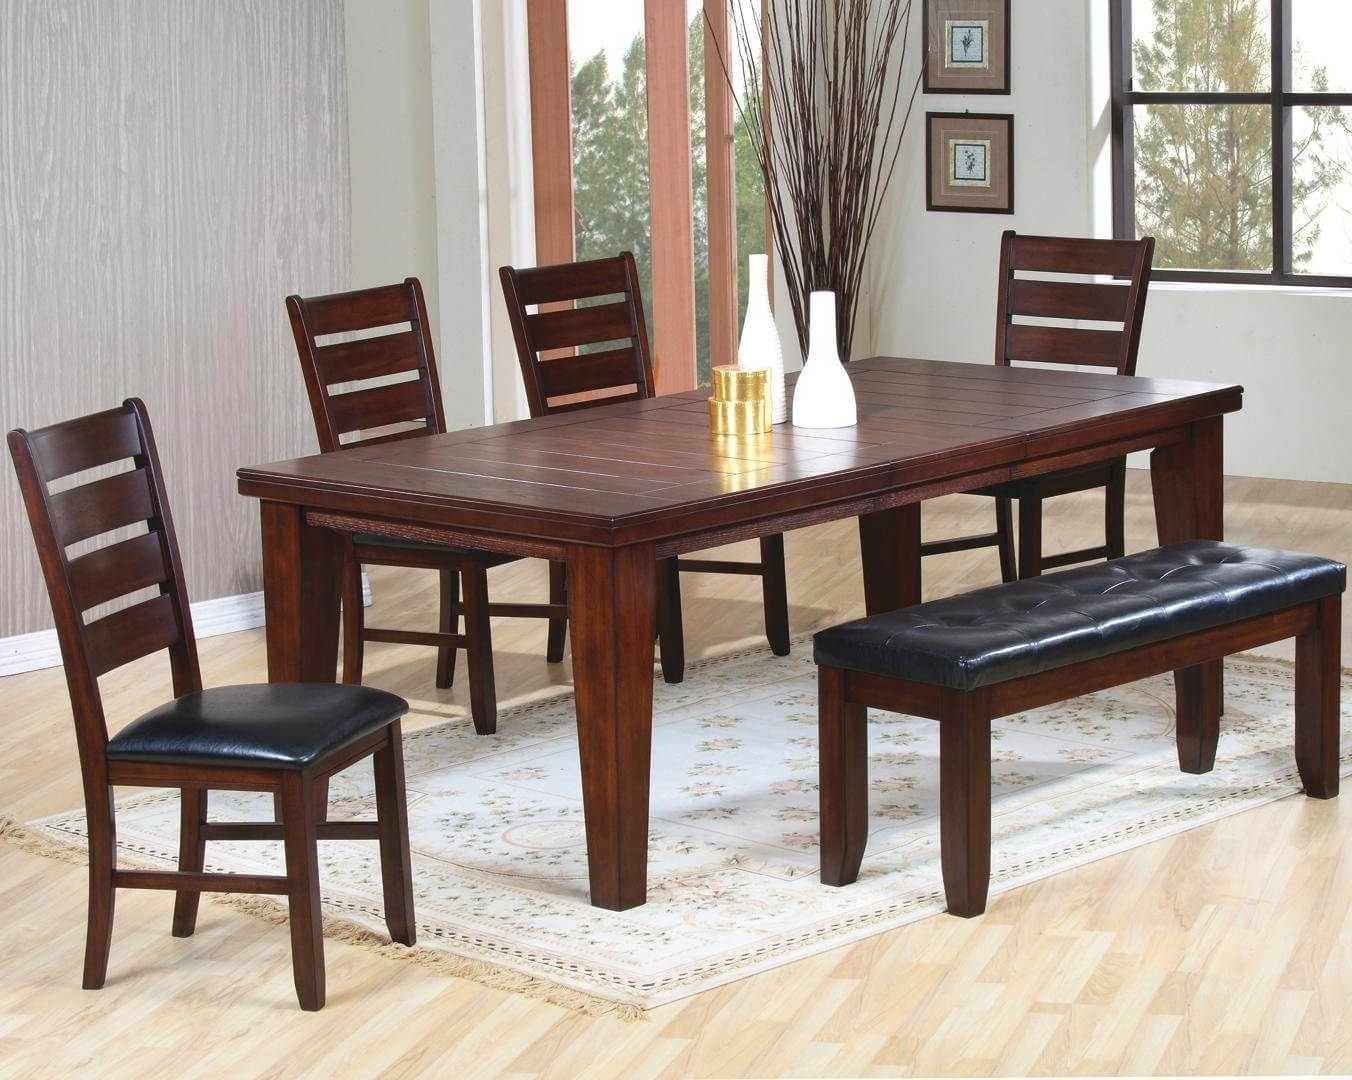 Well Known 26 Dining Room Sets (Big And Small) With Bench Seating (2018) Pertaining To Small Dining Tables And Bench Sets (View 5 of 25)